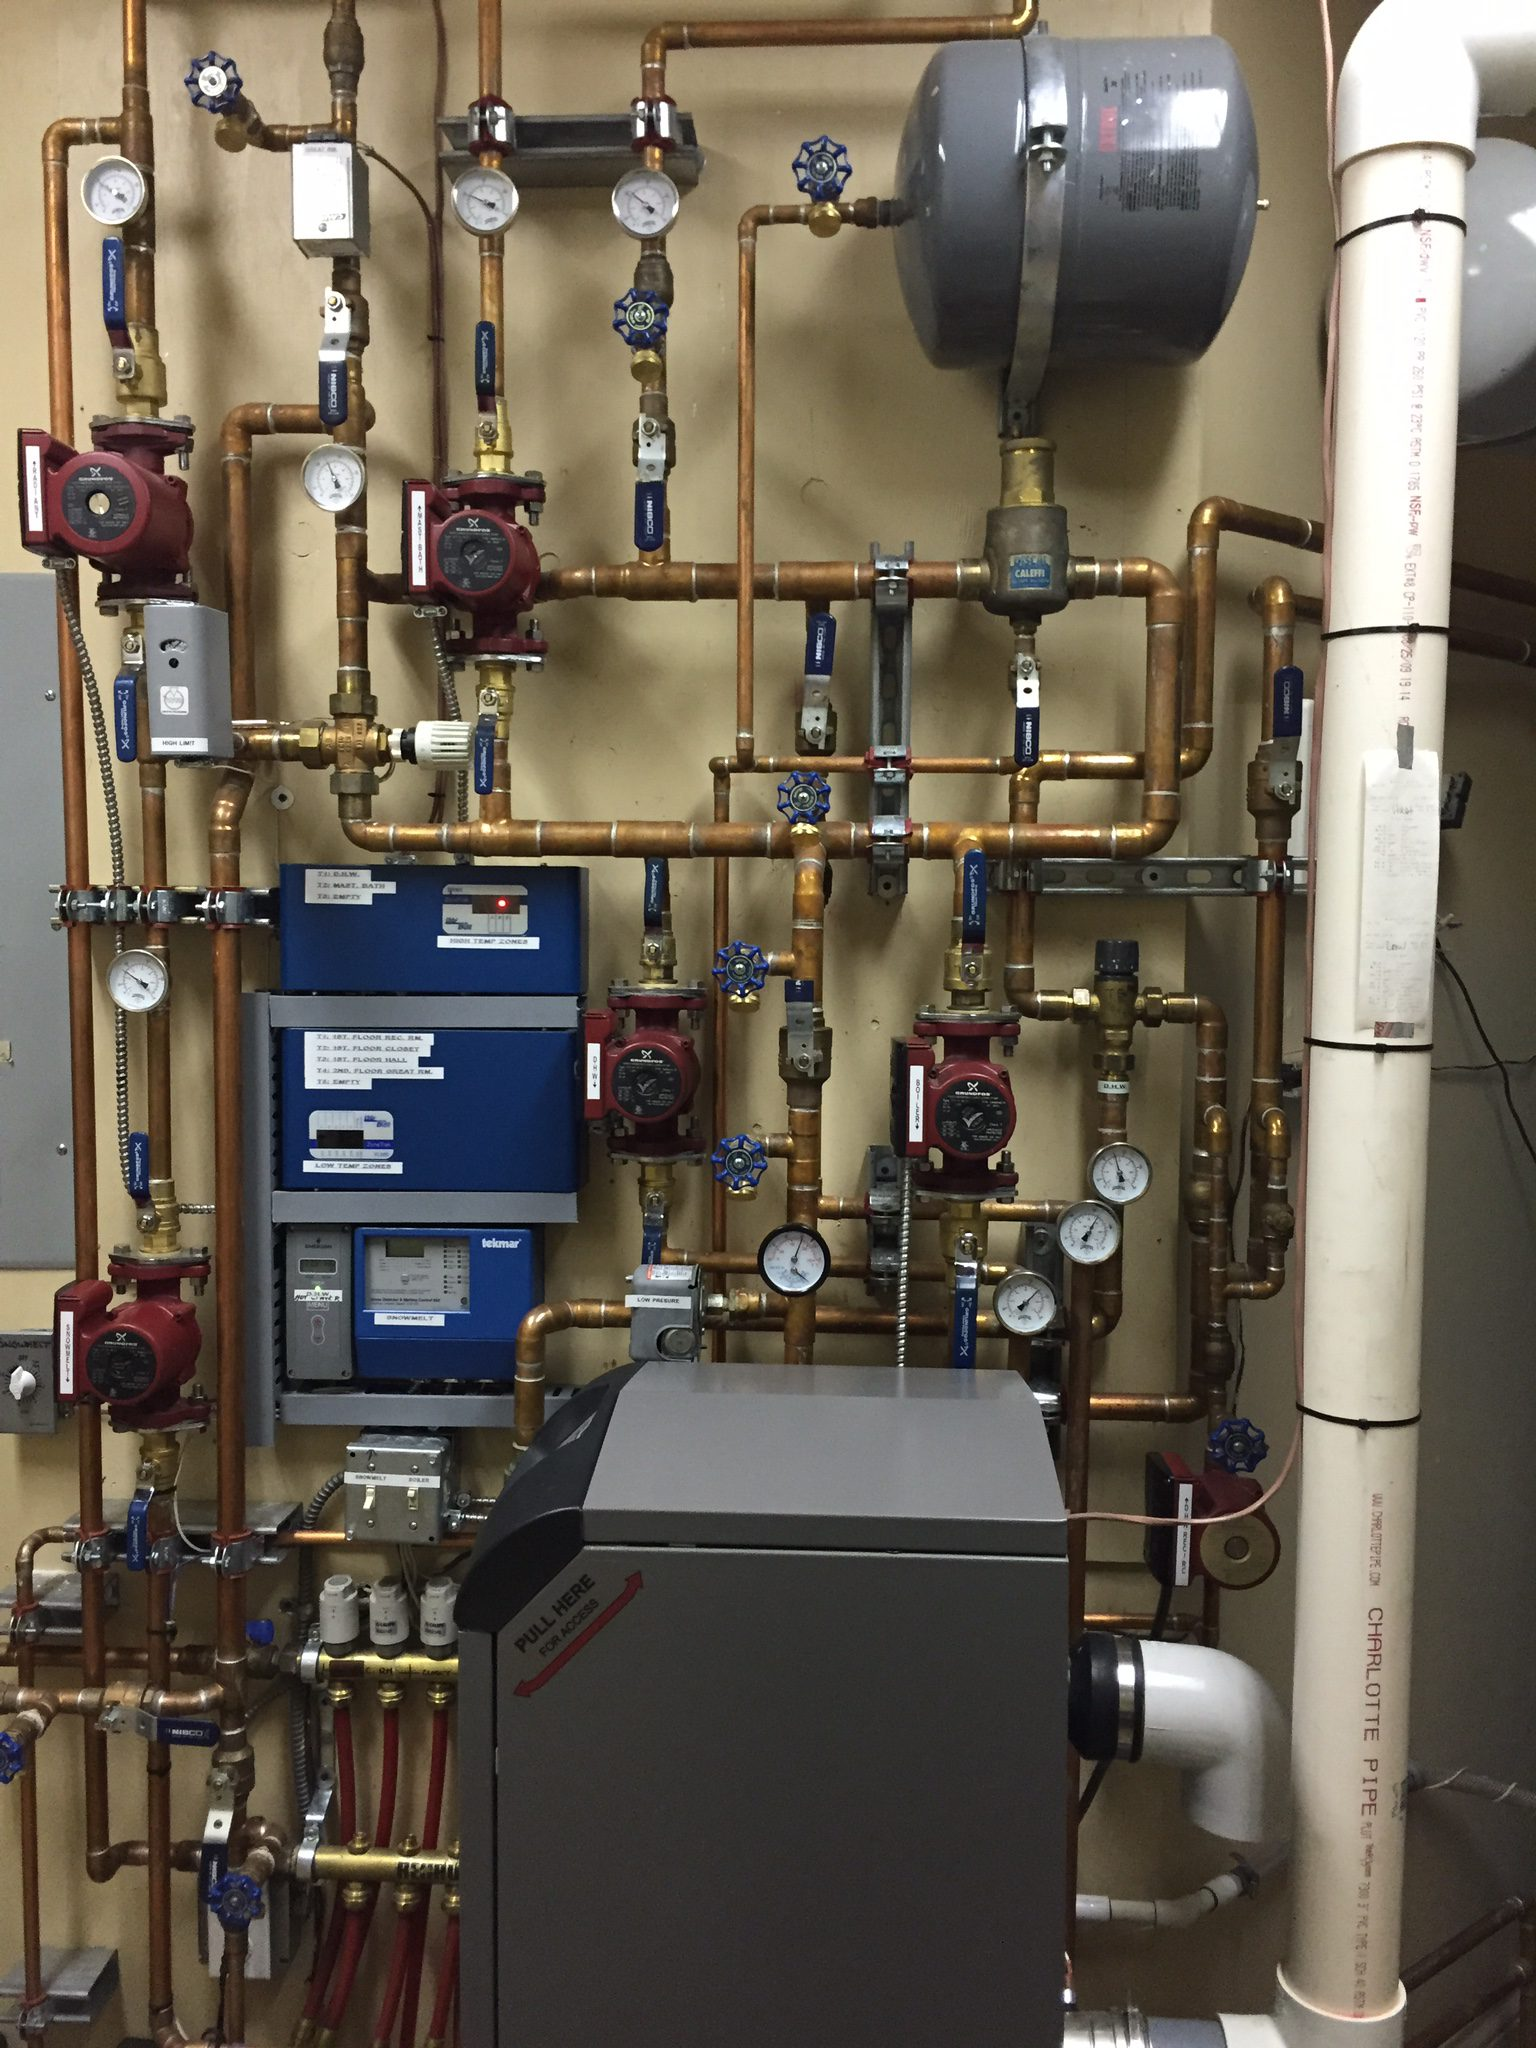 Boiler Maintenance 101: We Know Boiler Repair in Truckee, CA, Lake Tahoe and Surrounding Areas